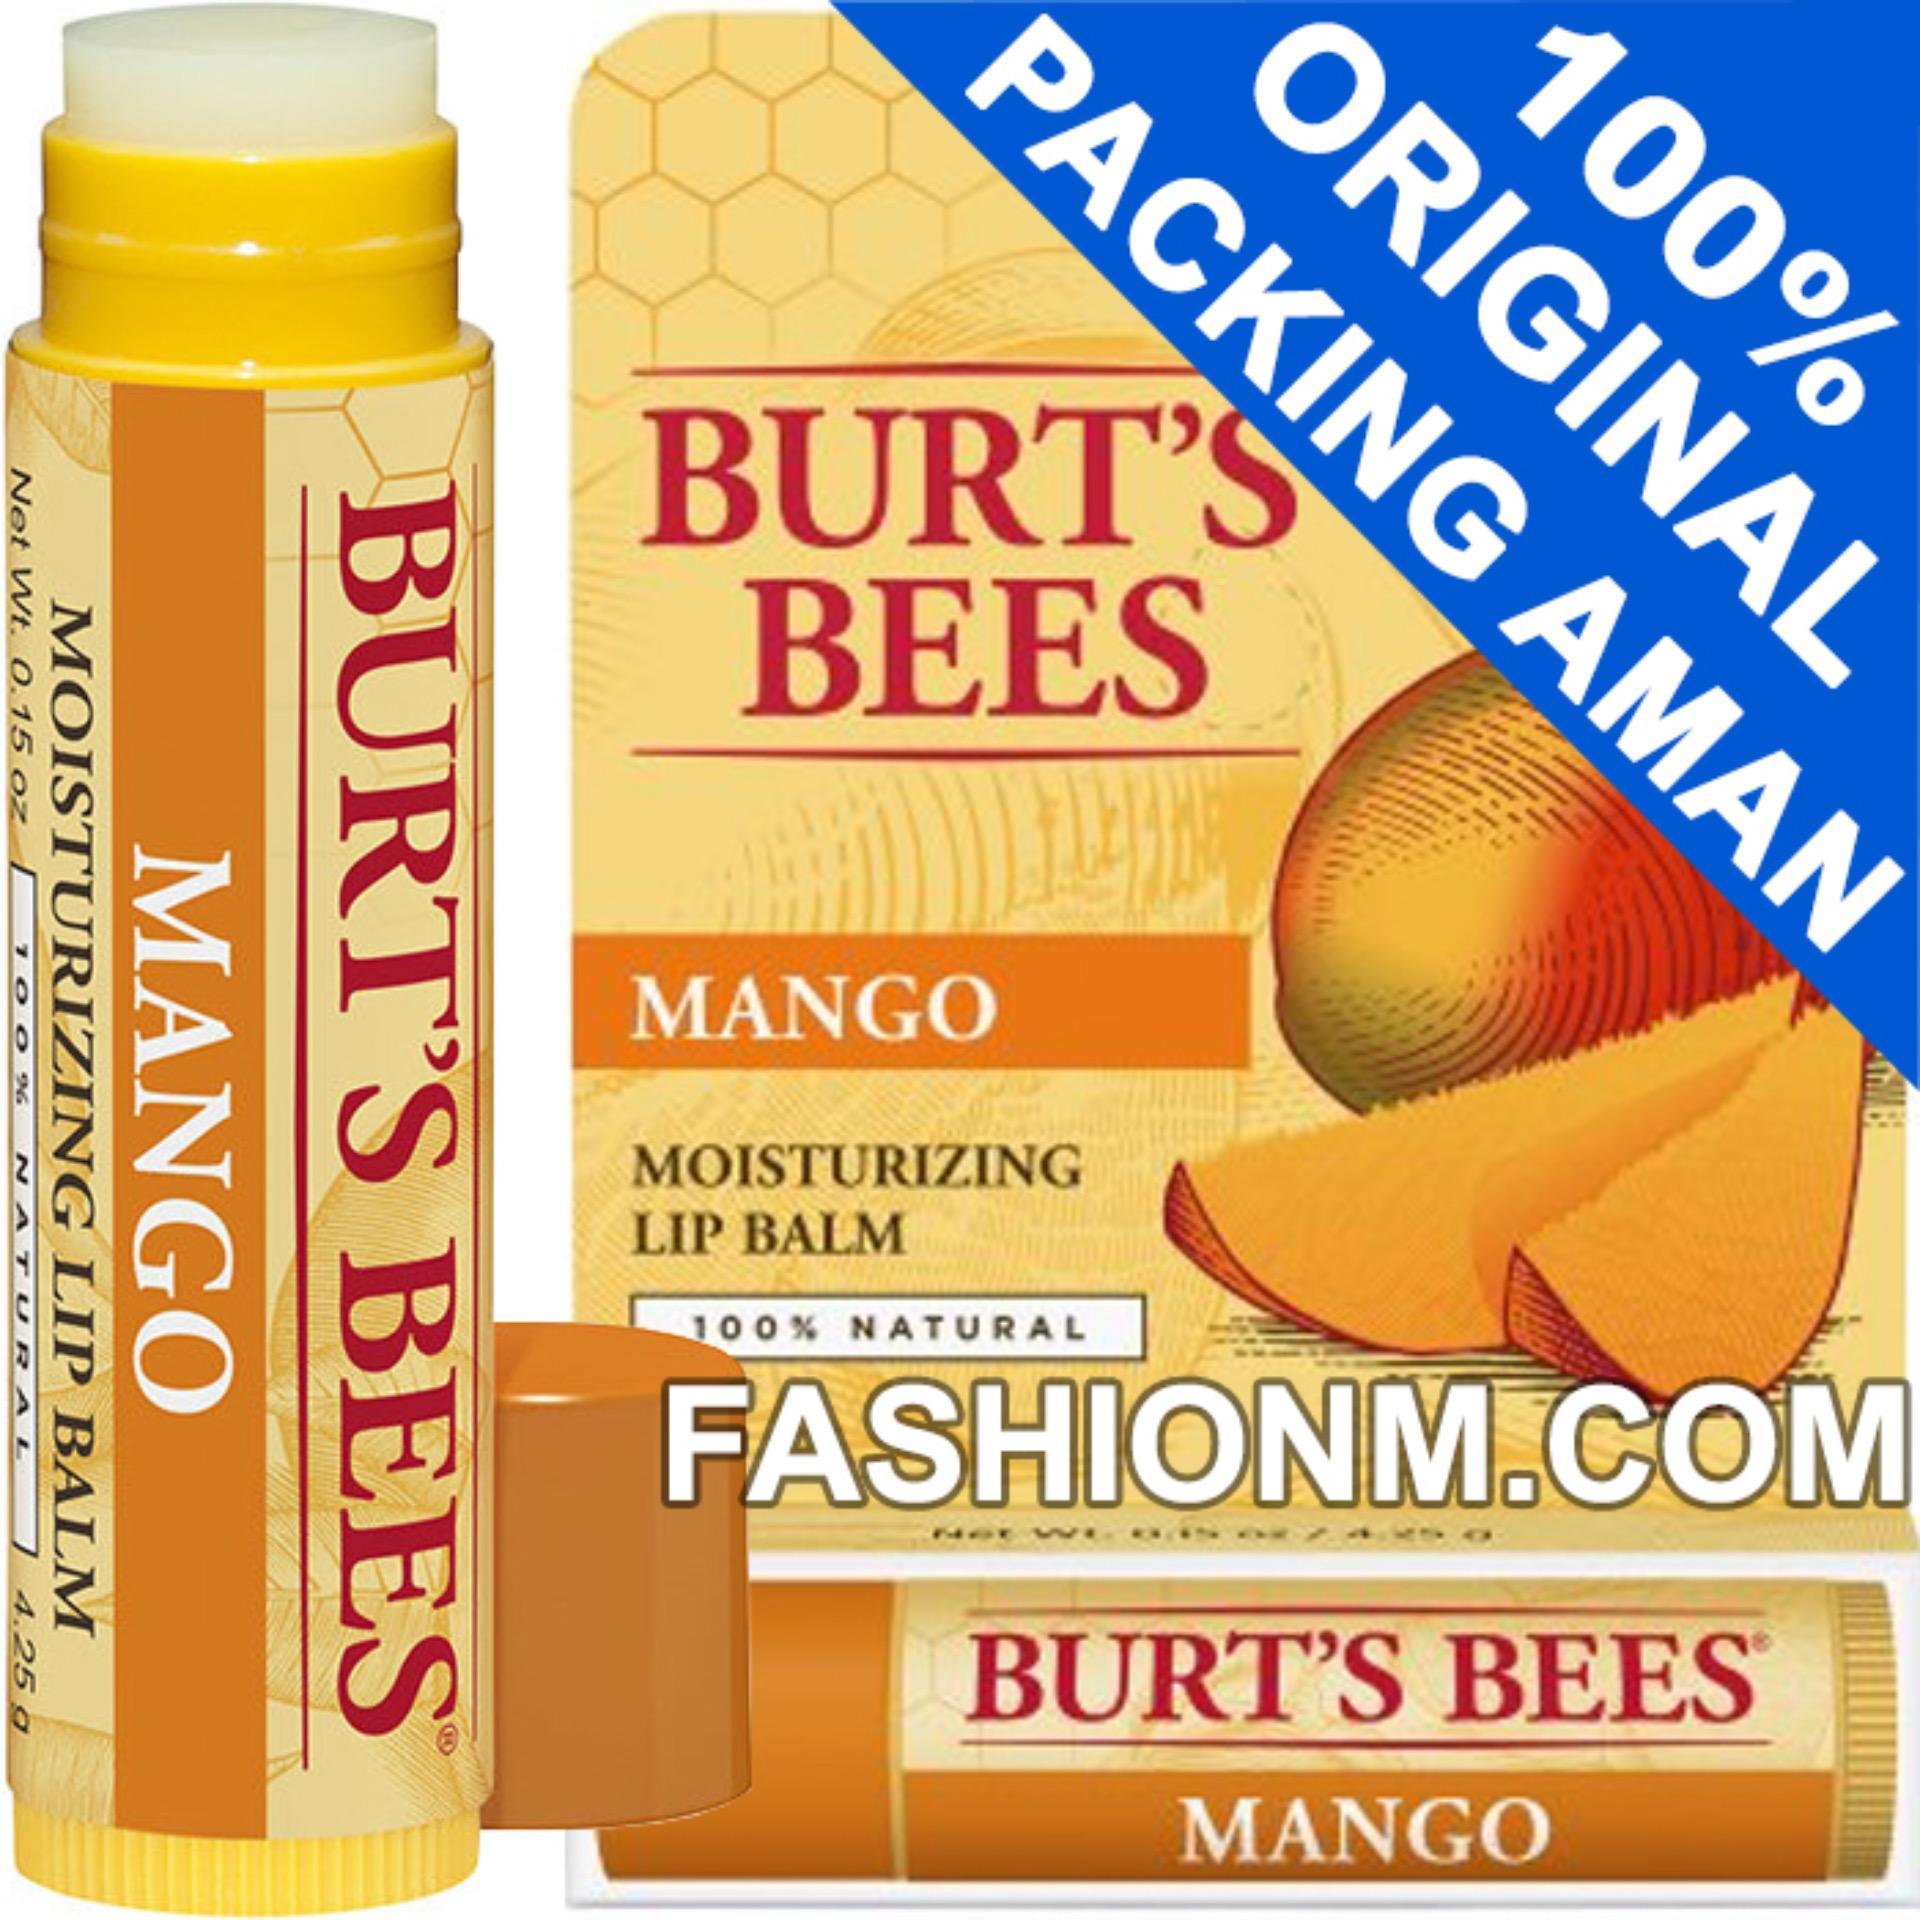 Burts Bees Mango Lip Balm (with Packaging)